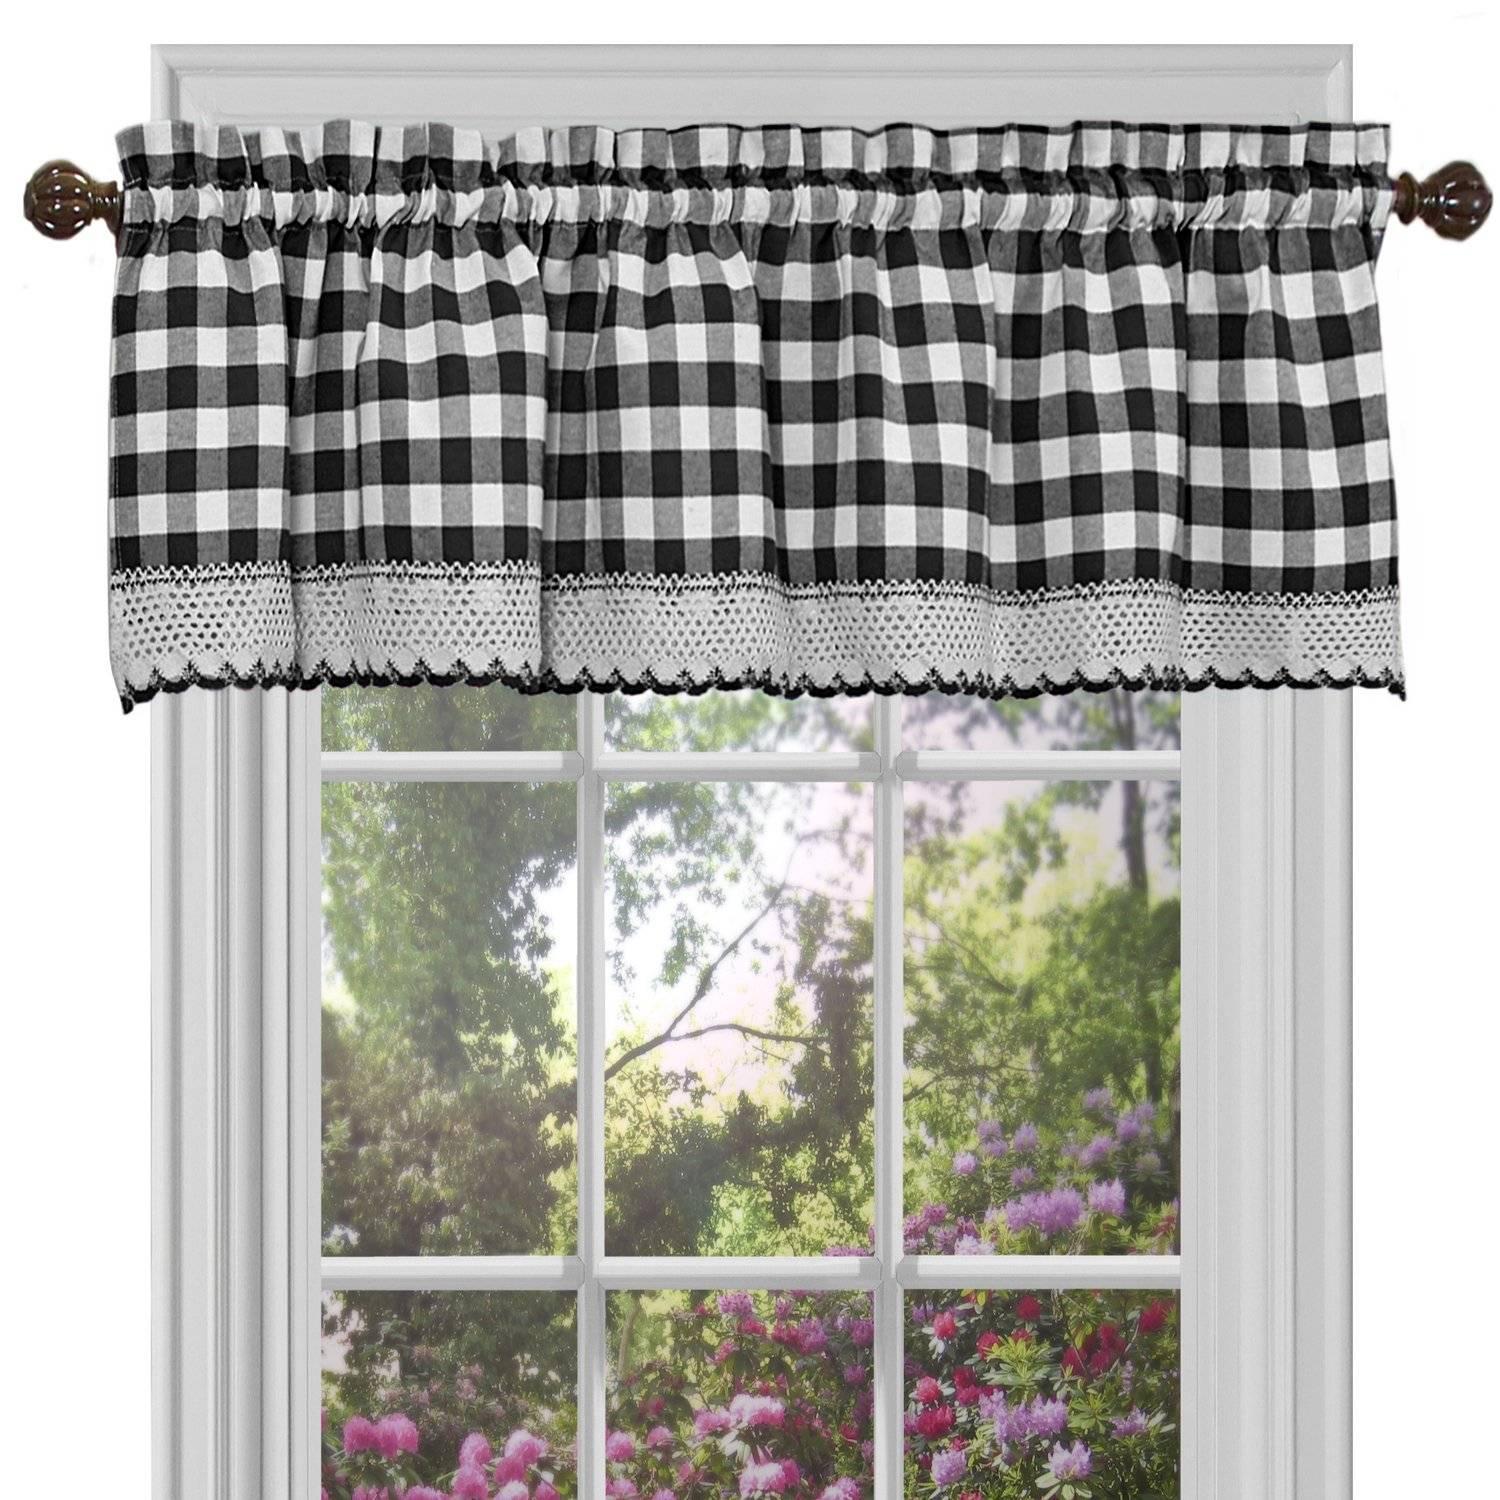 Alluring Black And White Checkered Kitchen Valance Valances Intended For Classic Black And White Curtain Tiers (View 3 of 20)